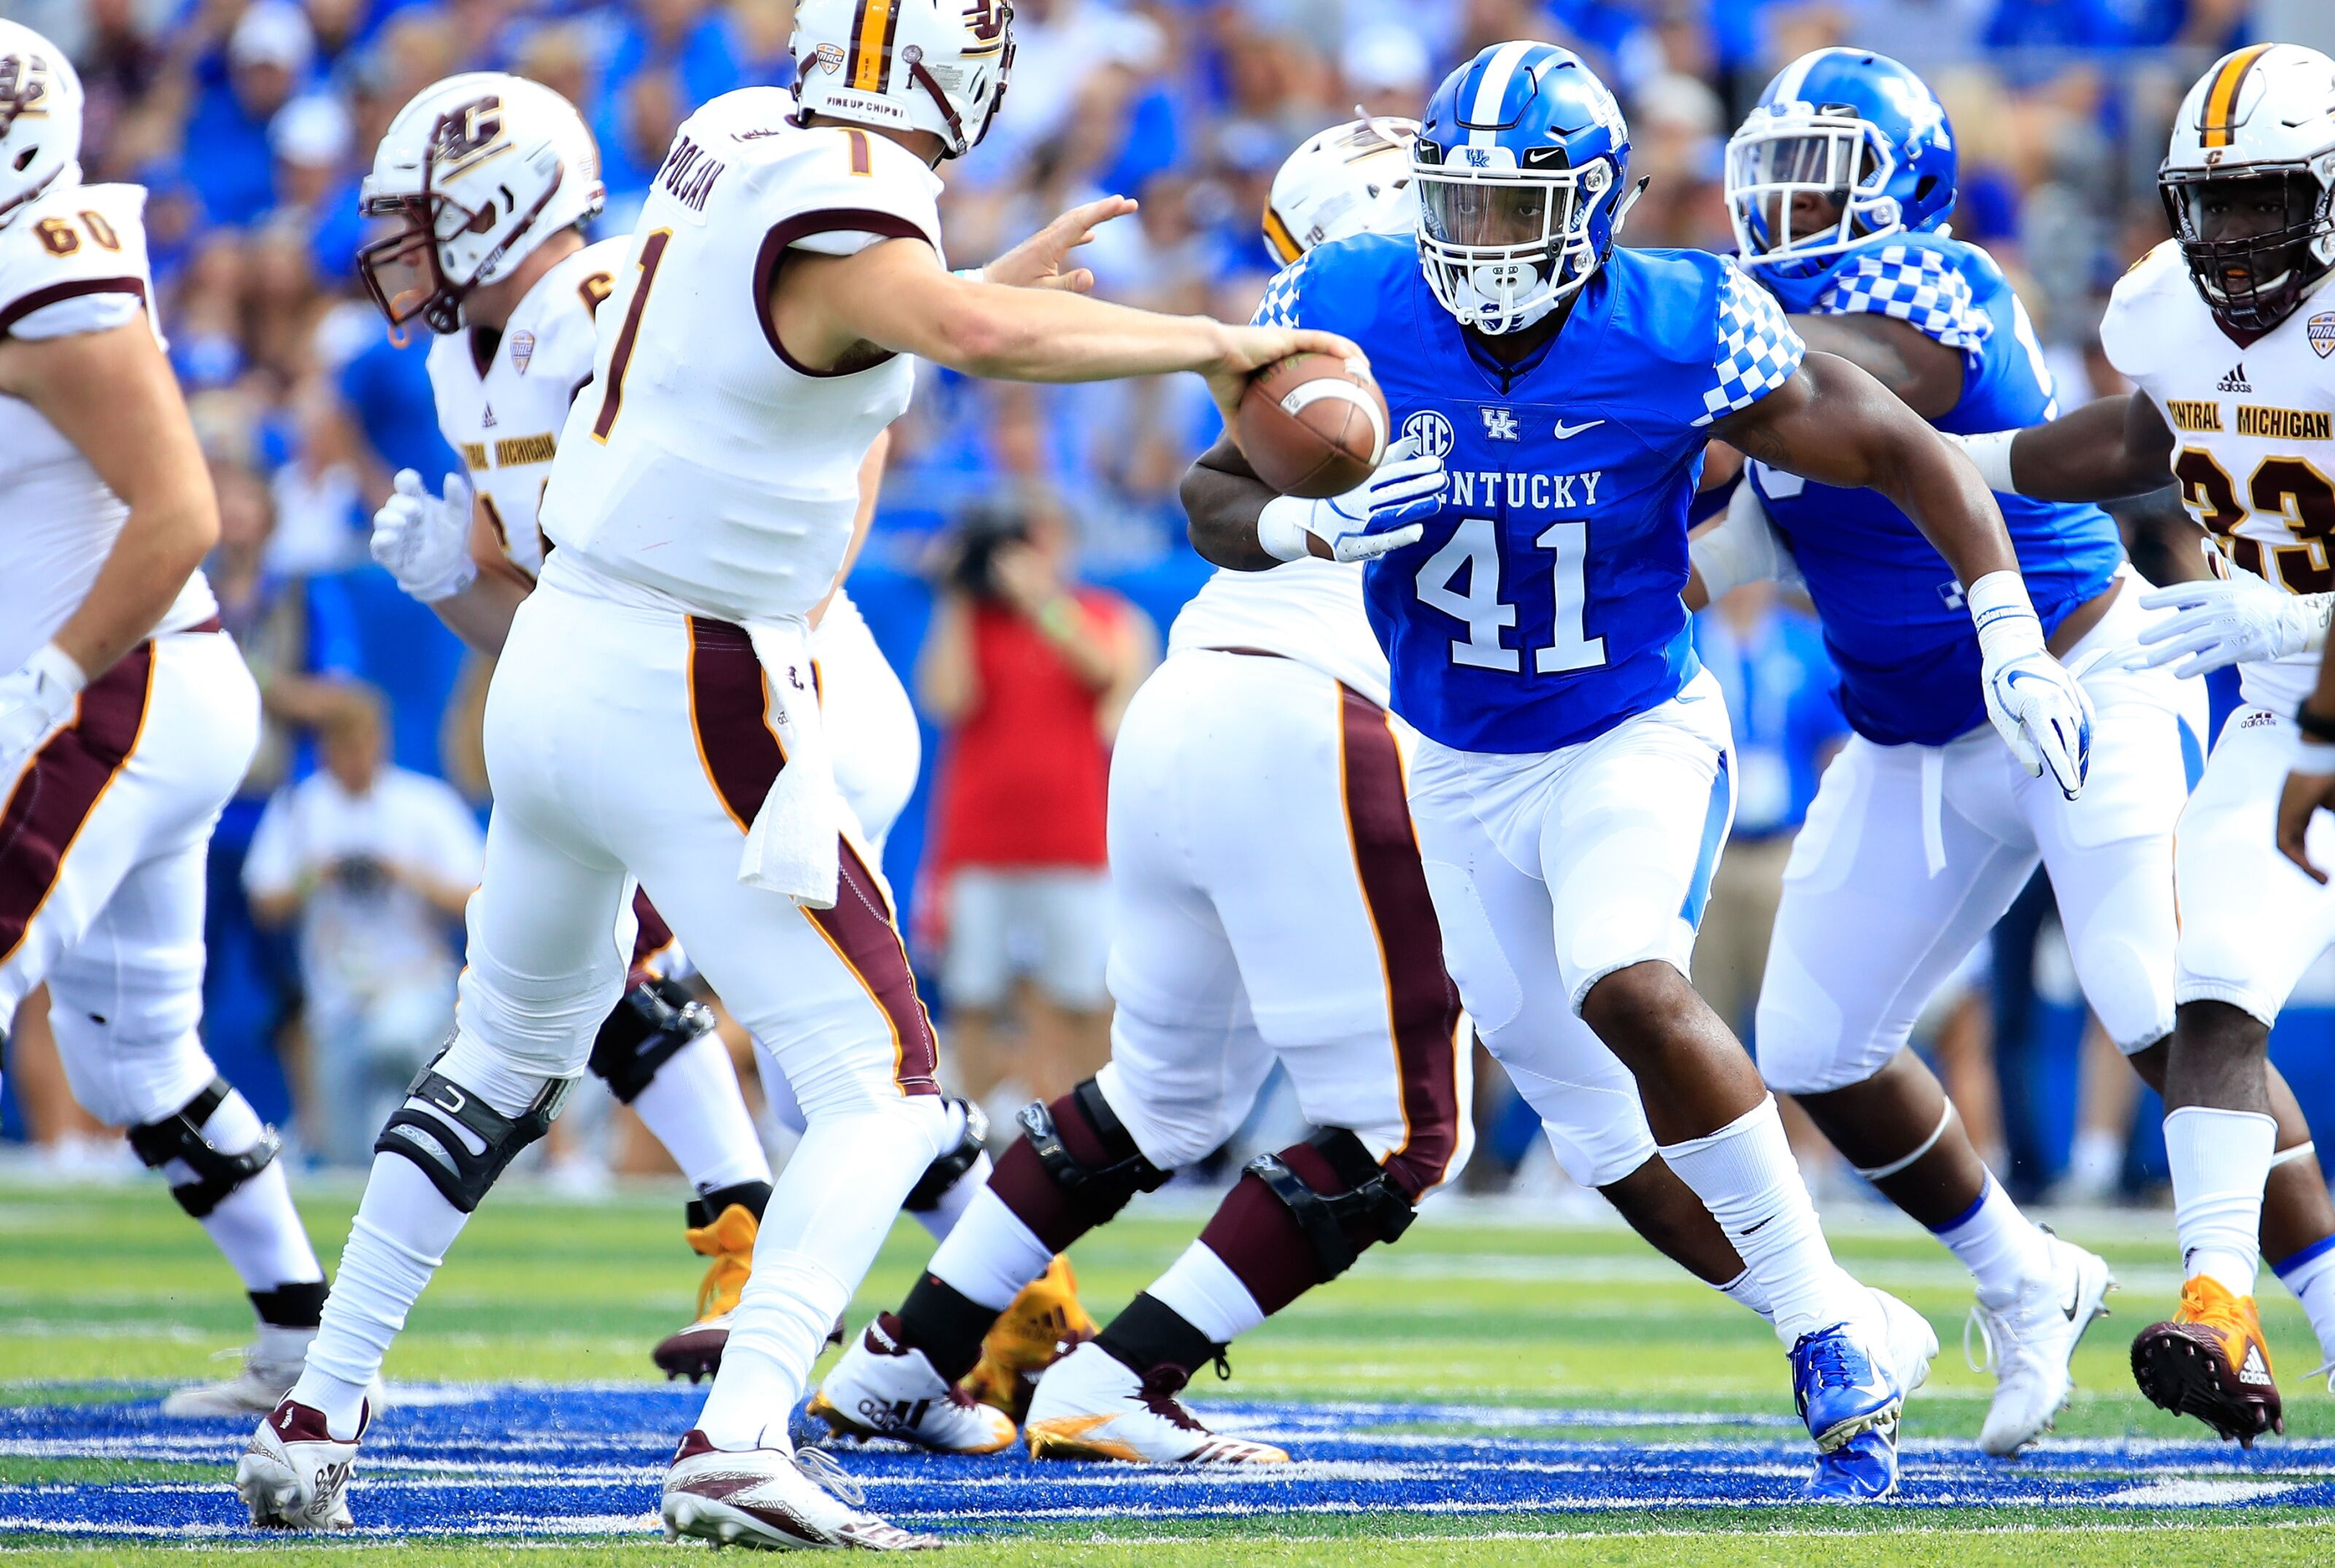 Arizona Cardinals may benefit from Kentucky Pro Day